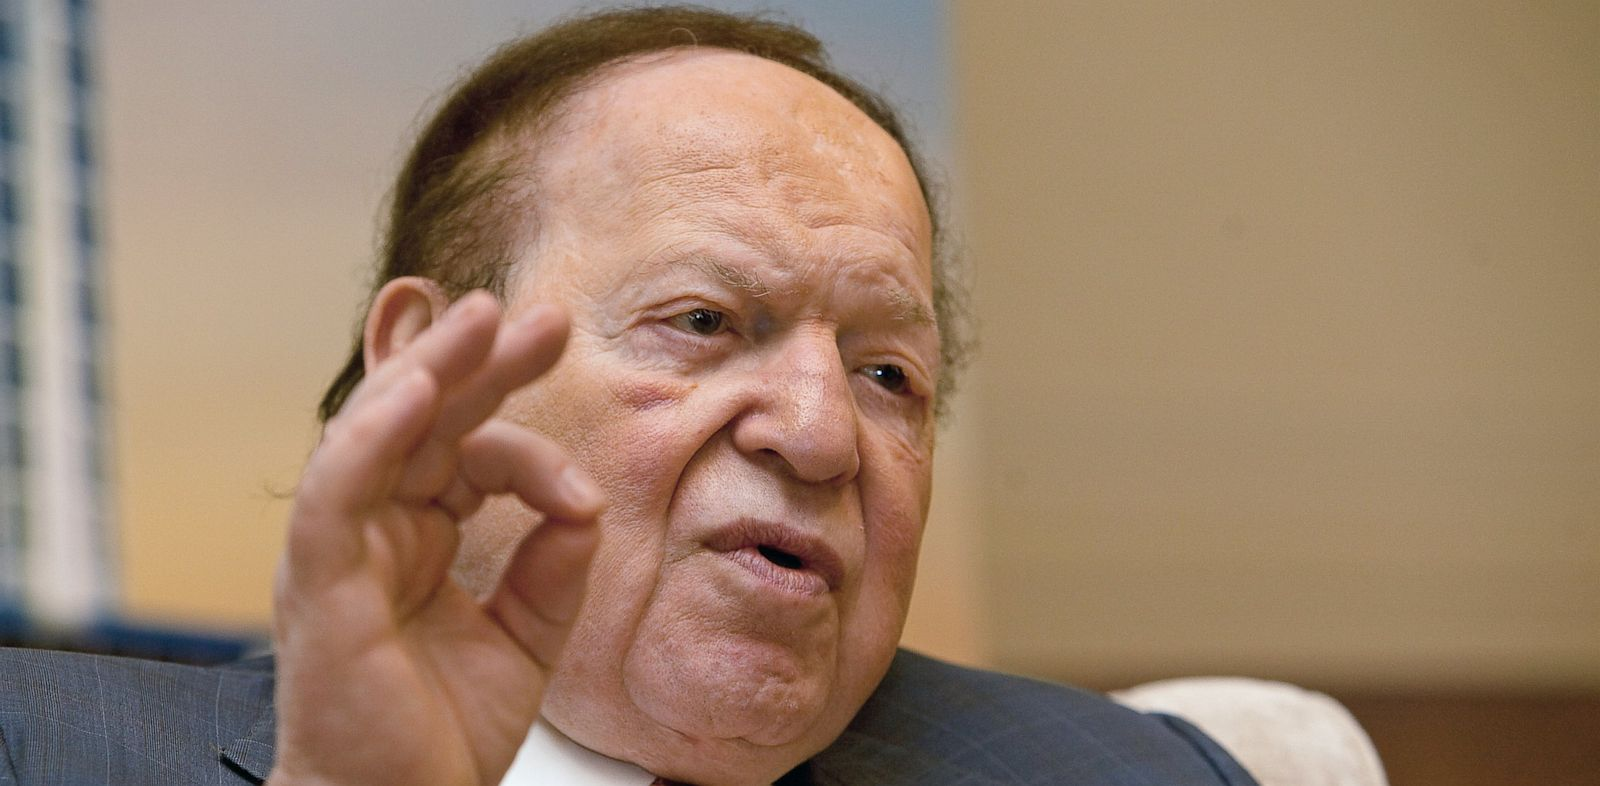 PHOTO: Las Vegas Sands Corp. CEO Sheldon Adelson speaks during a news conference in Macau, China, in this Sept. 20, 2012 photo.